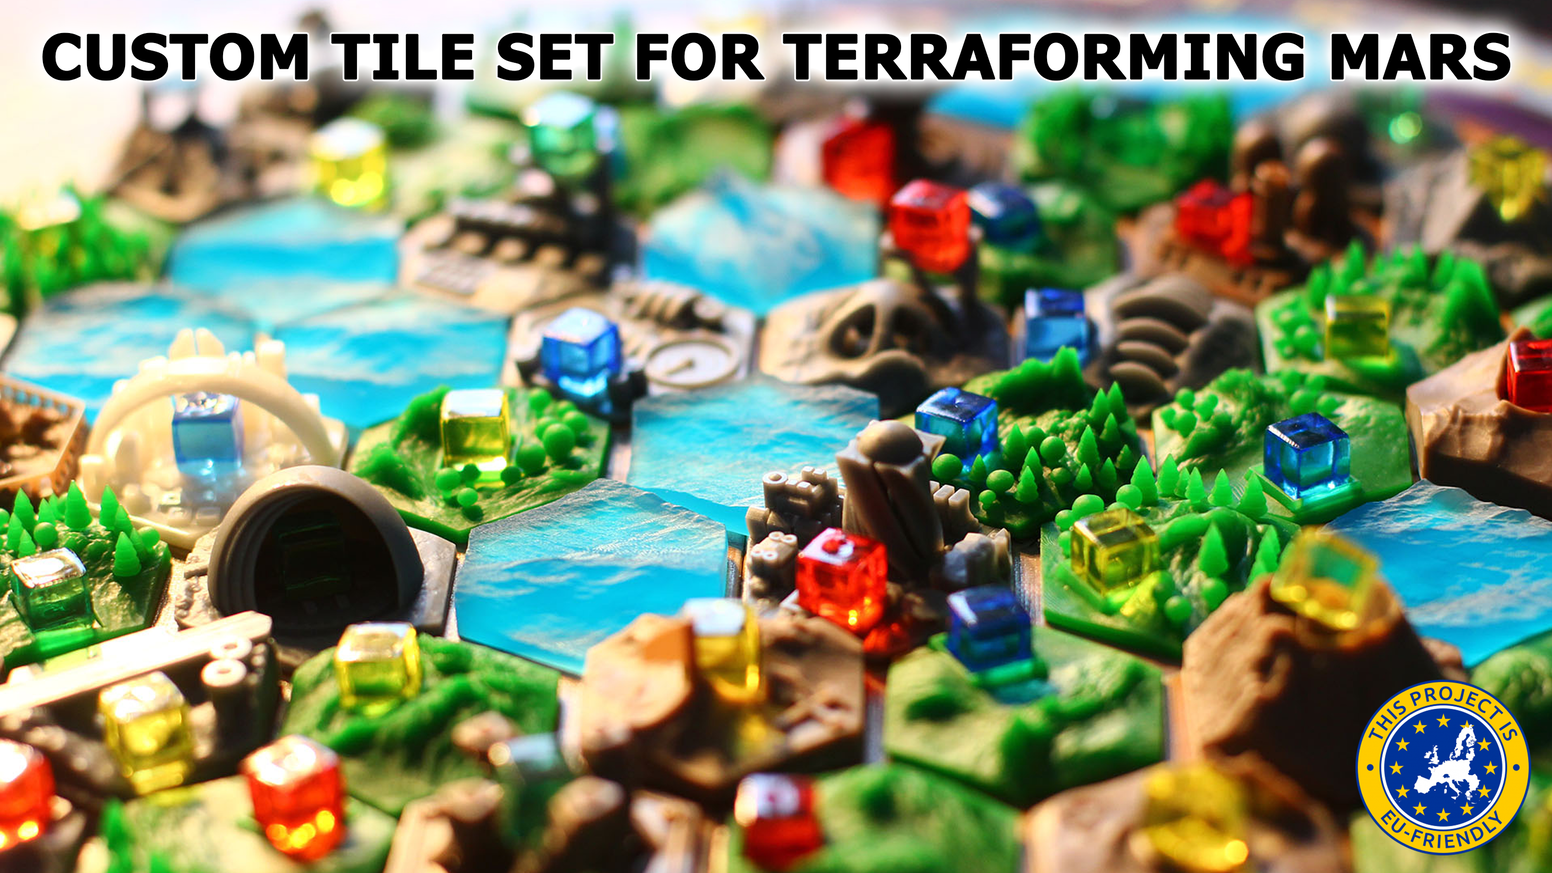 This is the first high resolution custom Tile Set for Terraforming Mars. Printed with DLP 3D printers and shiped all over the world.